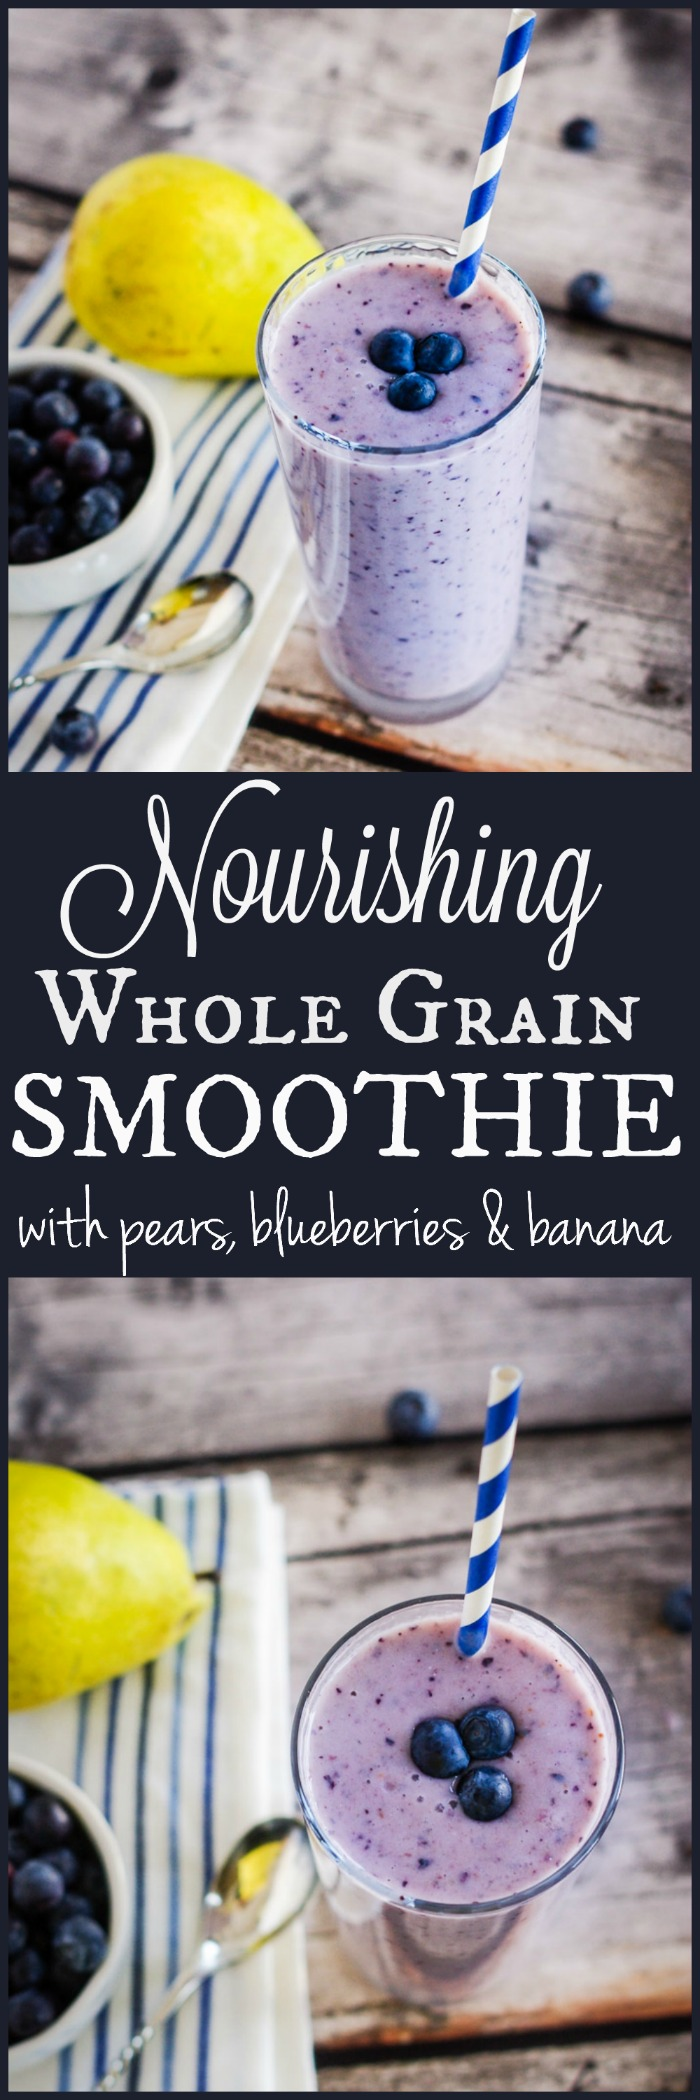 Nourishing Whole Grain Smoothie with Pears, Blueberries & Bananas | www.homeandplate.com | Start your mornings by nourishing your body with wholesome goodness and fresh seasonal fruit.